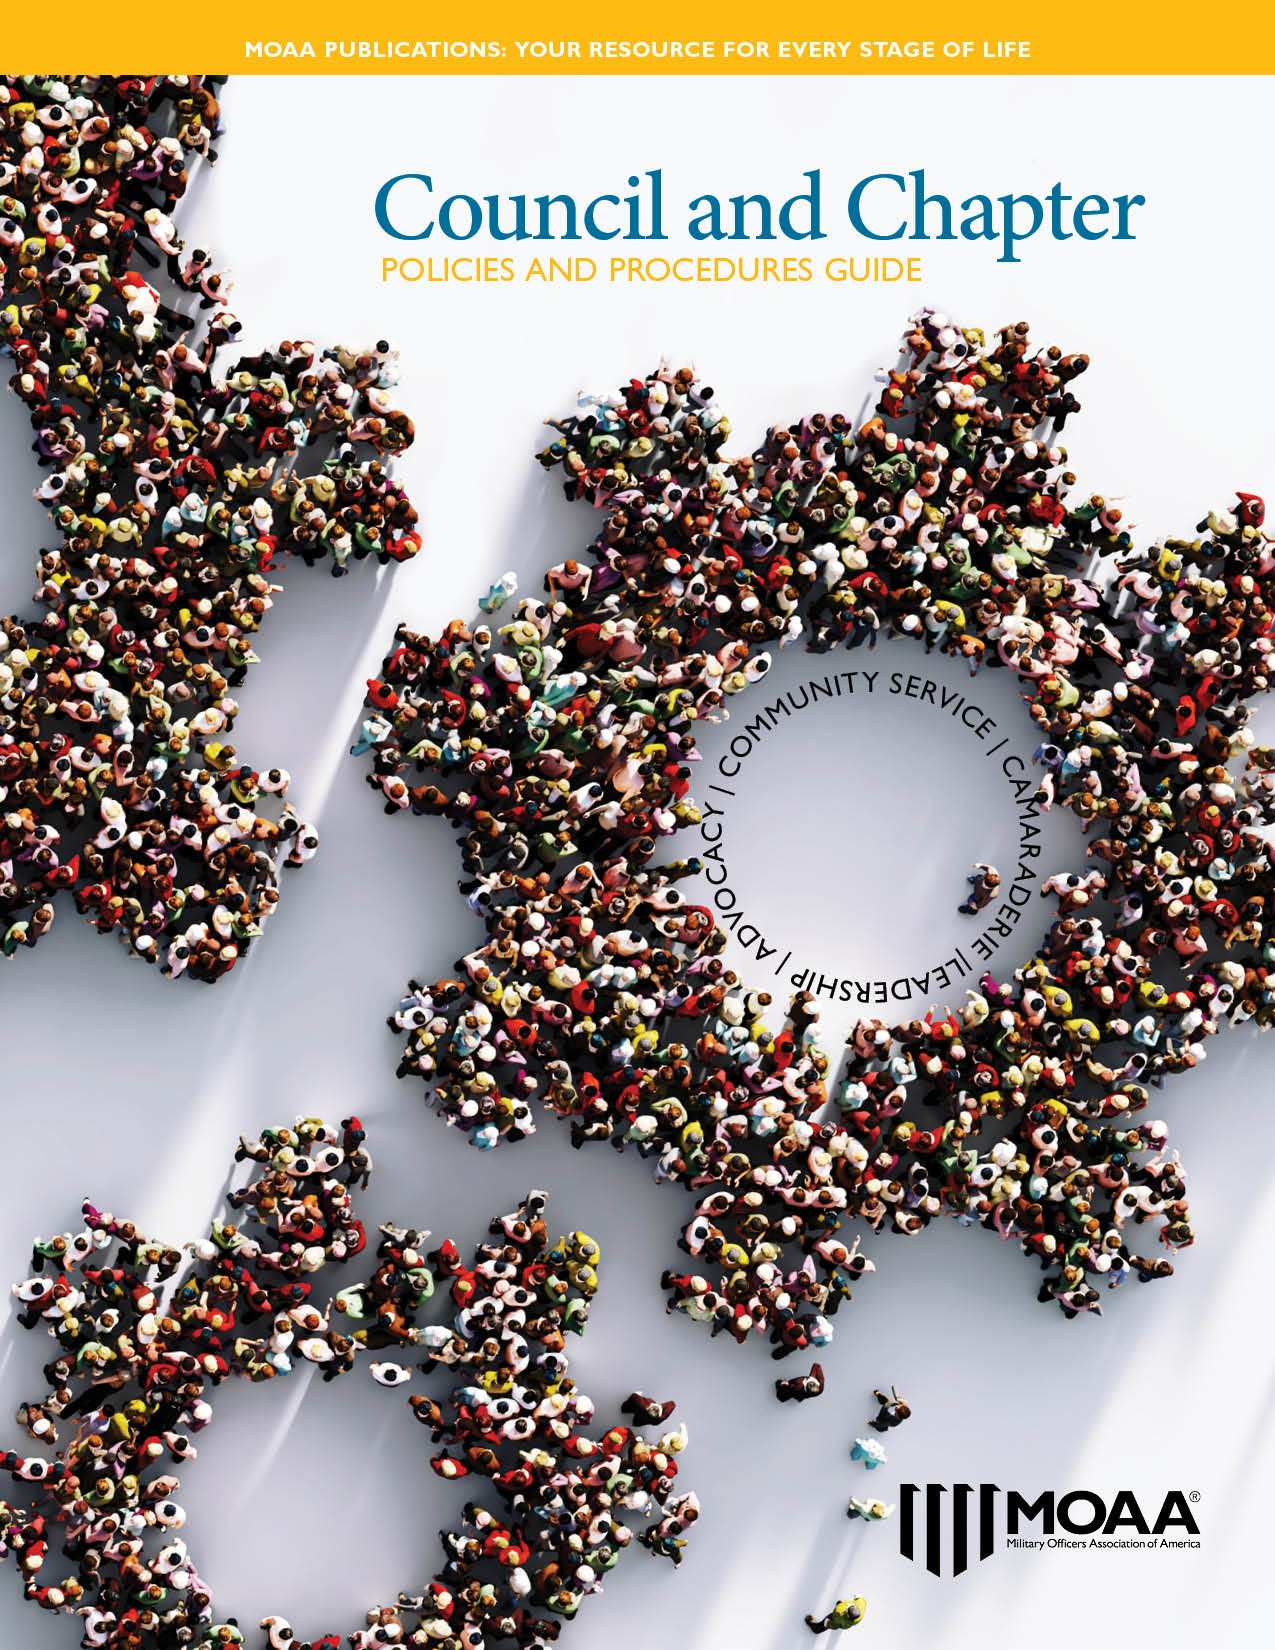 Council and Chapters Policy and Procedure Guide Cover Image